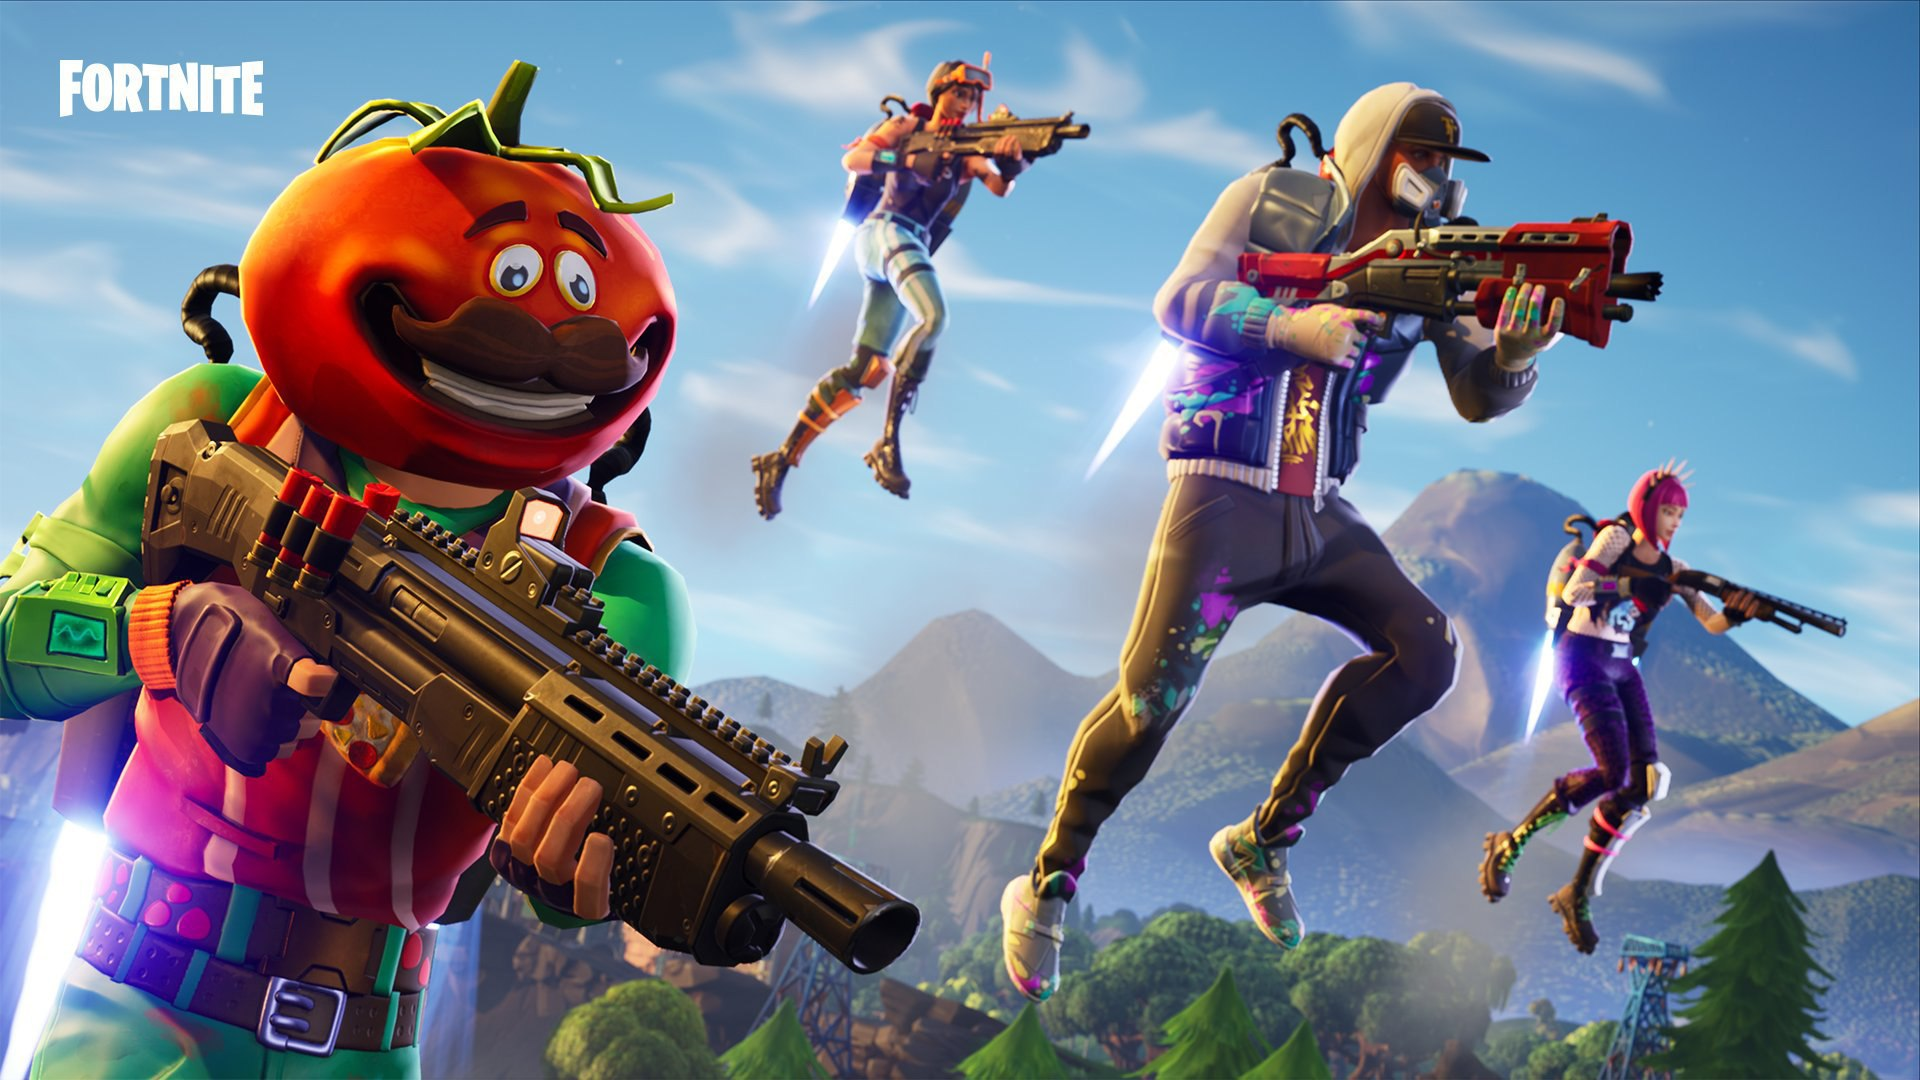 Free Download 25 Fortnite Battle Royale 4k Wallpapers On Wallpapersafari 1920x1080 For Your Desktop Mobile Tablet Explore 43 Fortnite 4k Hd Wallpapers Fortnite 4k Hd Wallpapers Fortnite Anime 4k